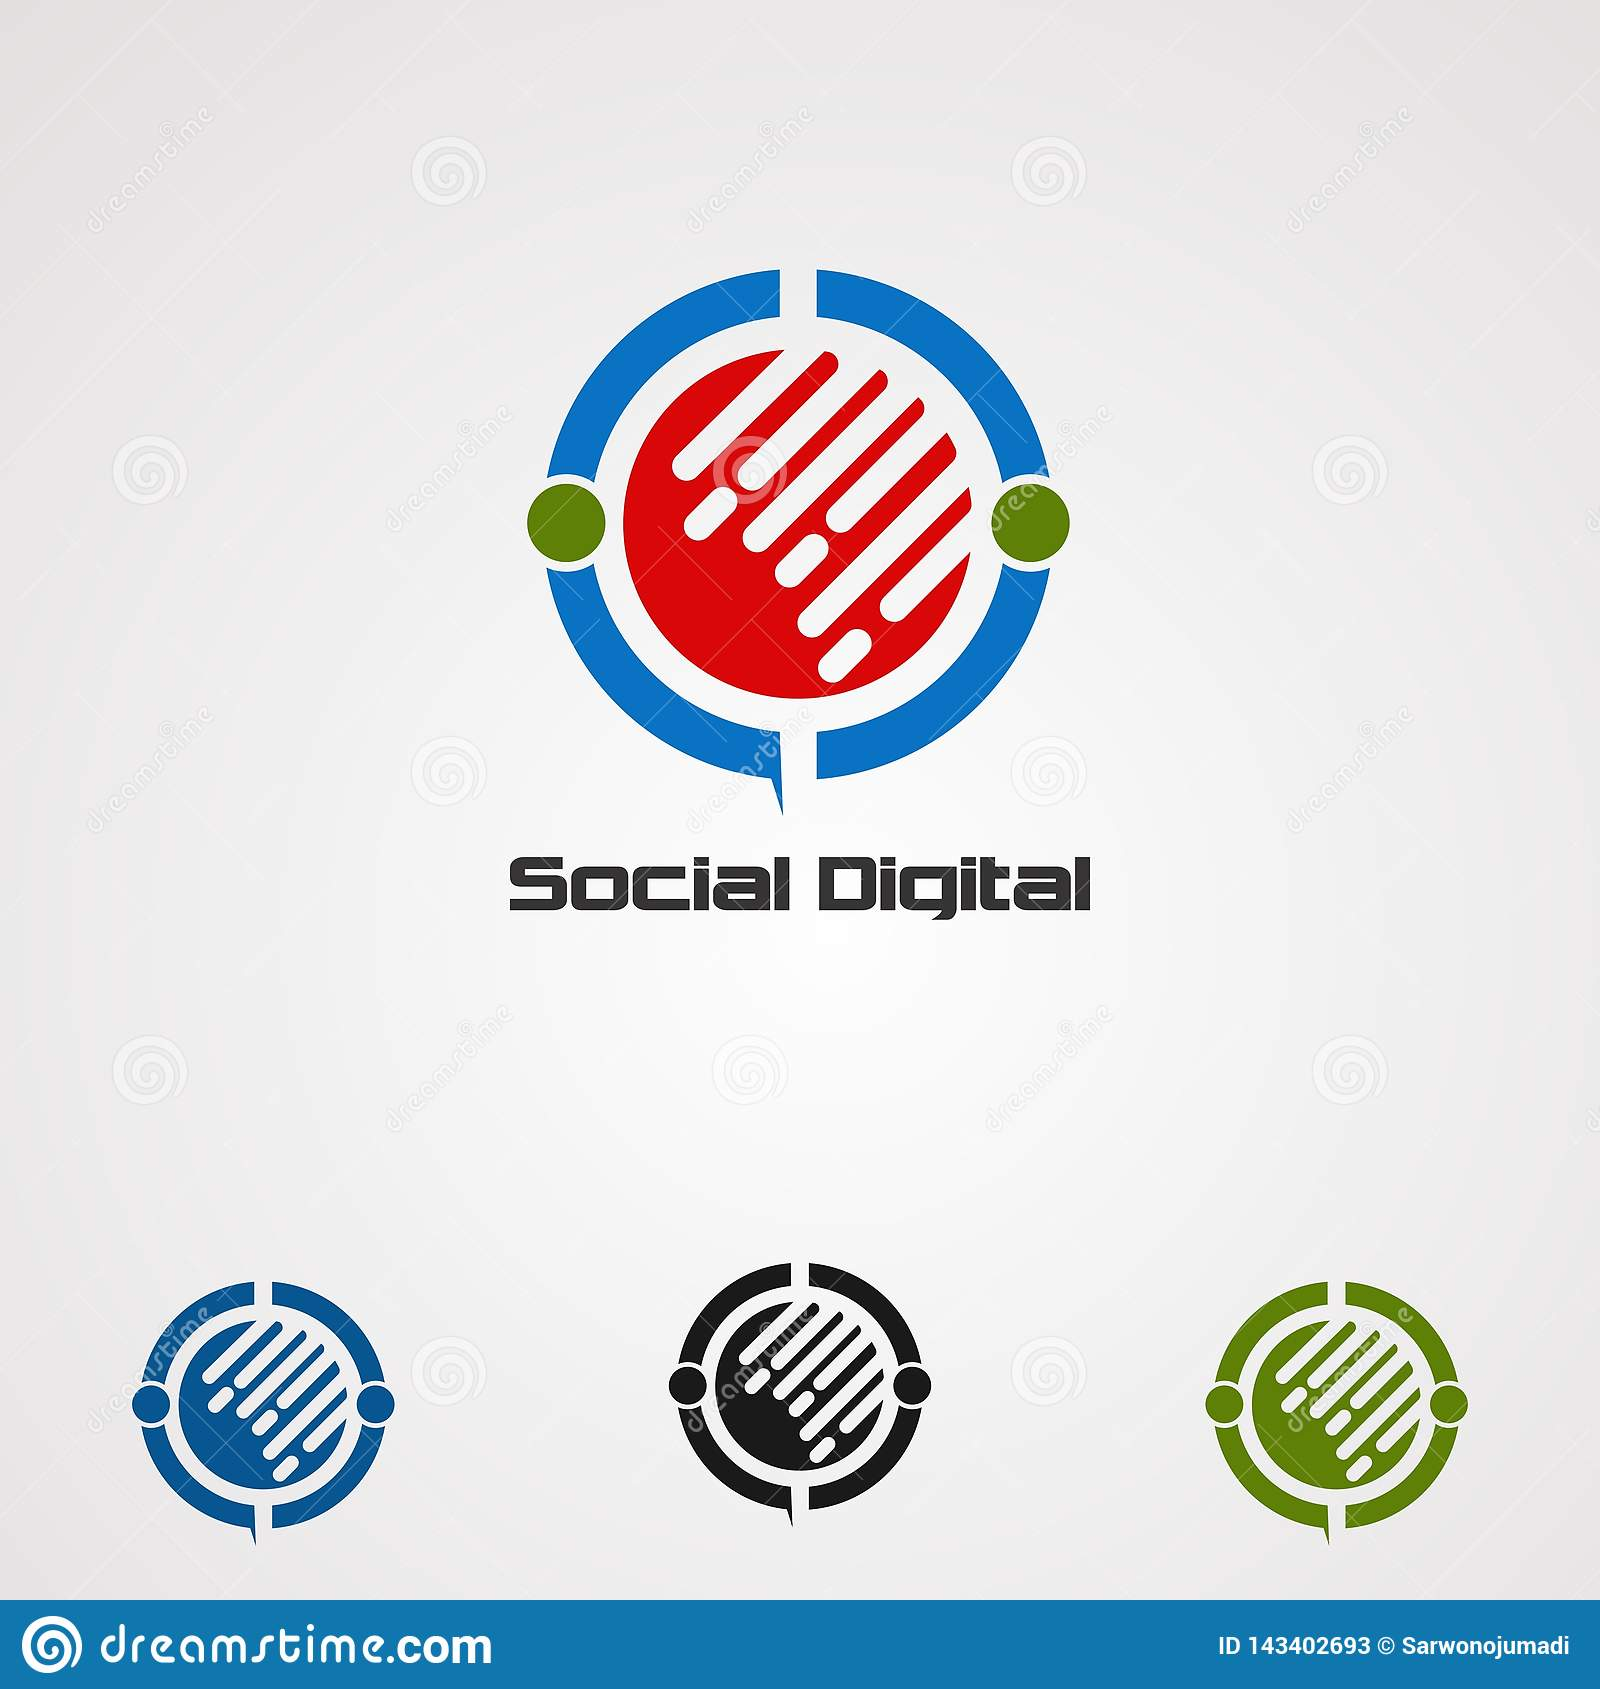 Social digital logo vector, icon, element, and template for company